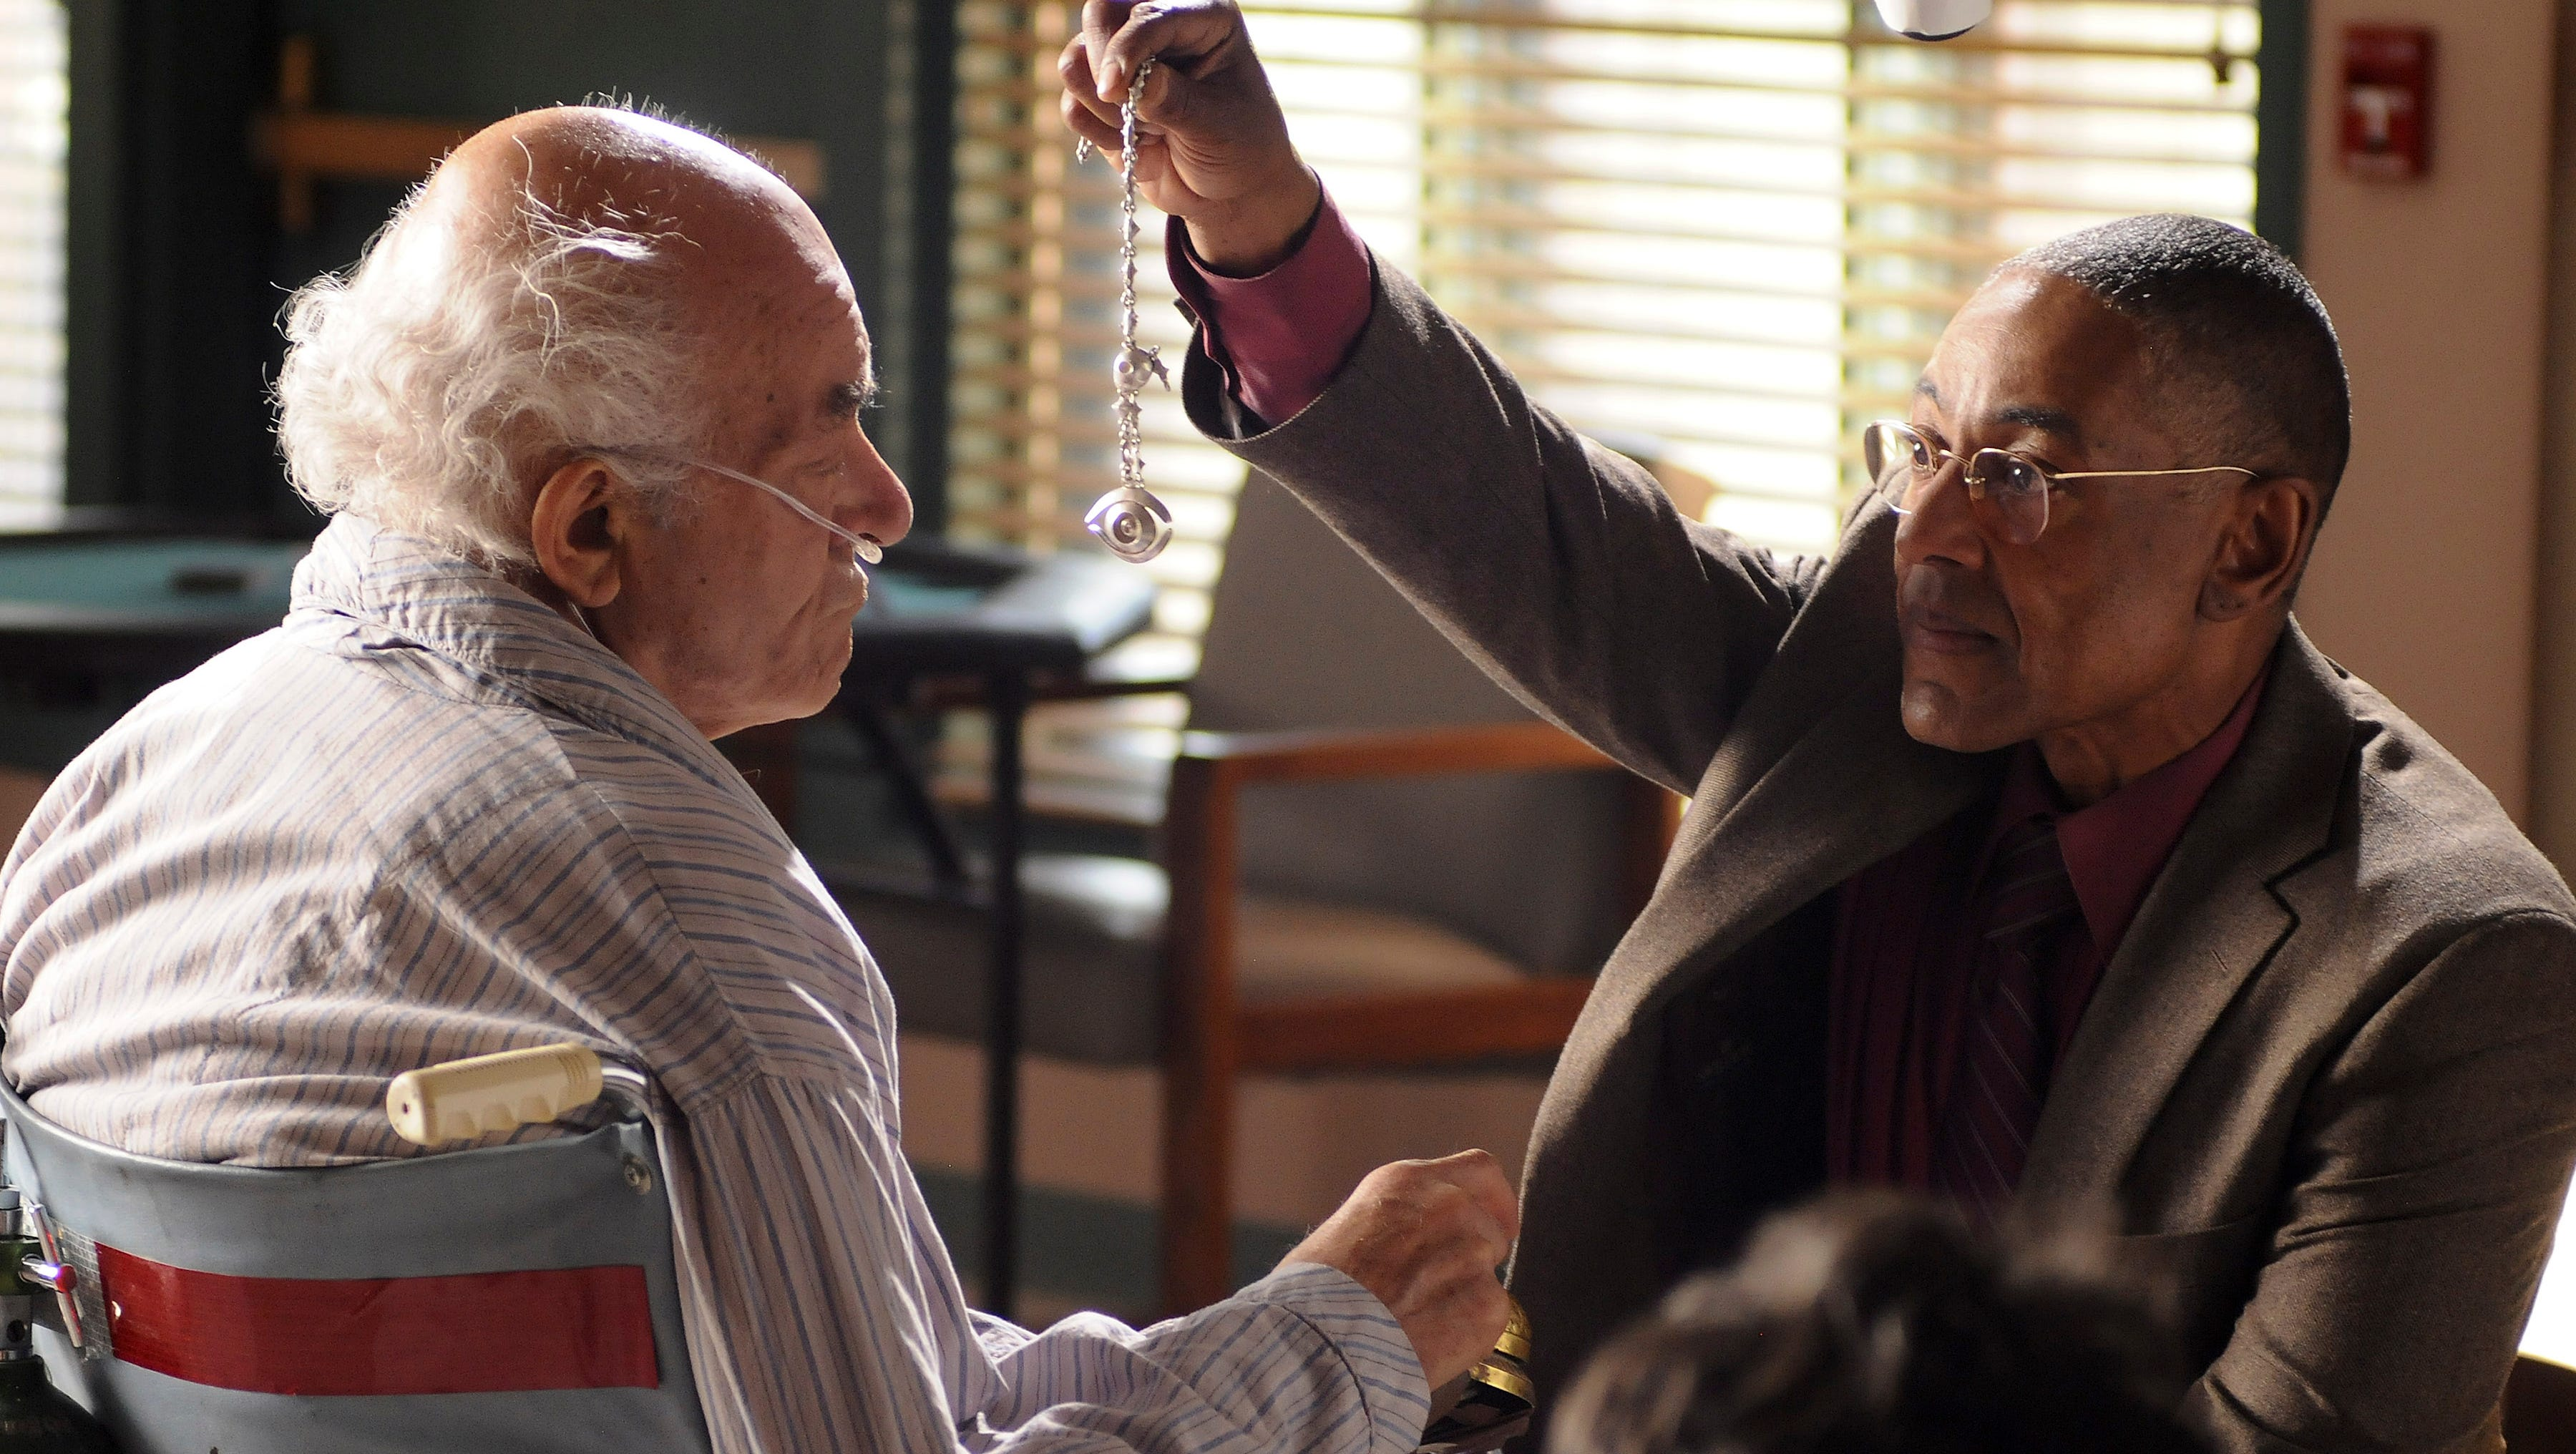 "'Face Off' (Season 4, episode 13): Gus Fring (Giancarlo Esposito, right) comes to a nursing home to kill drug cartel member Tio (Marc Margolis). But Walt has rigged Tio's wheelchair with a bomb, which detonates and rips off Fring's face, killing him. The difficulty, Gilligan says, wasn't in the explosion, but the timing of cameras, nurses and Esposito afterward. ""The reactions had to be just right,"" he says. ""That took 19 takes, and we got it on the 19th. It was worth it."""